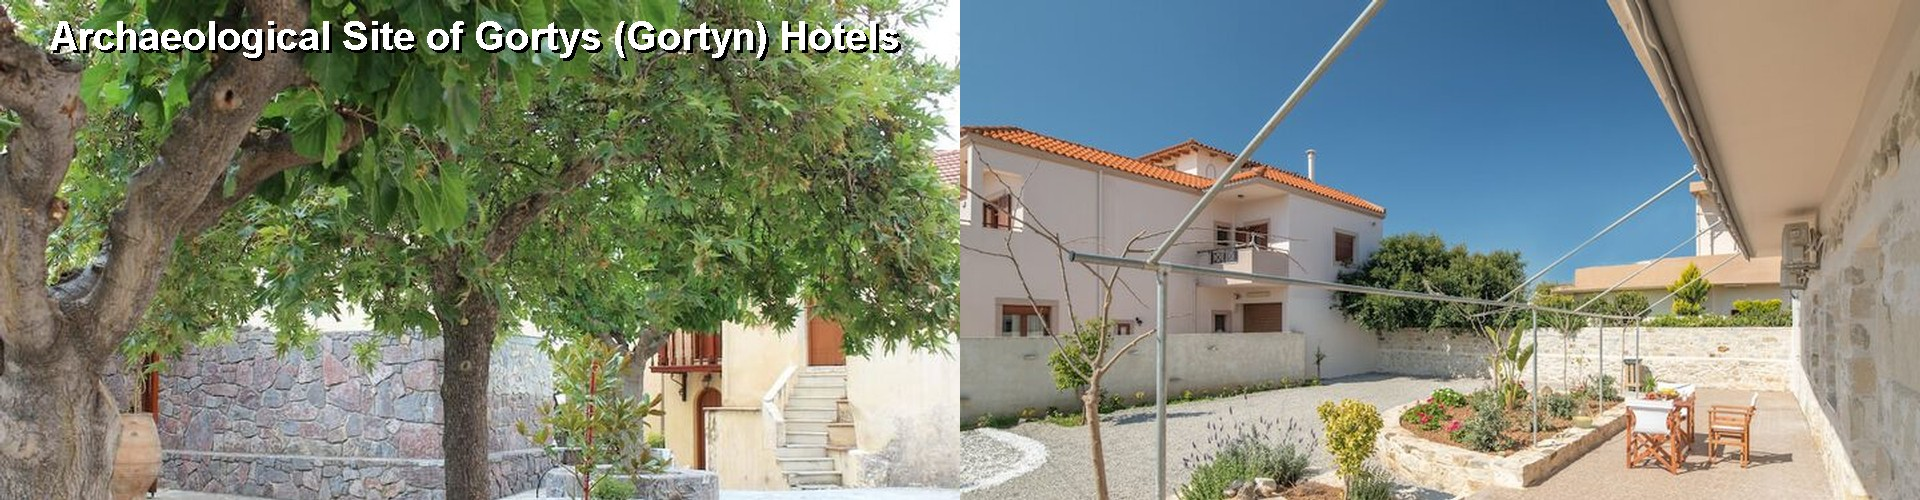 5 Best Hotels near Archaeological Site of Gortys (Gortyn)